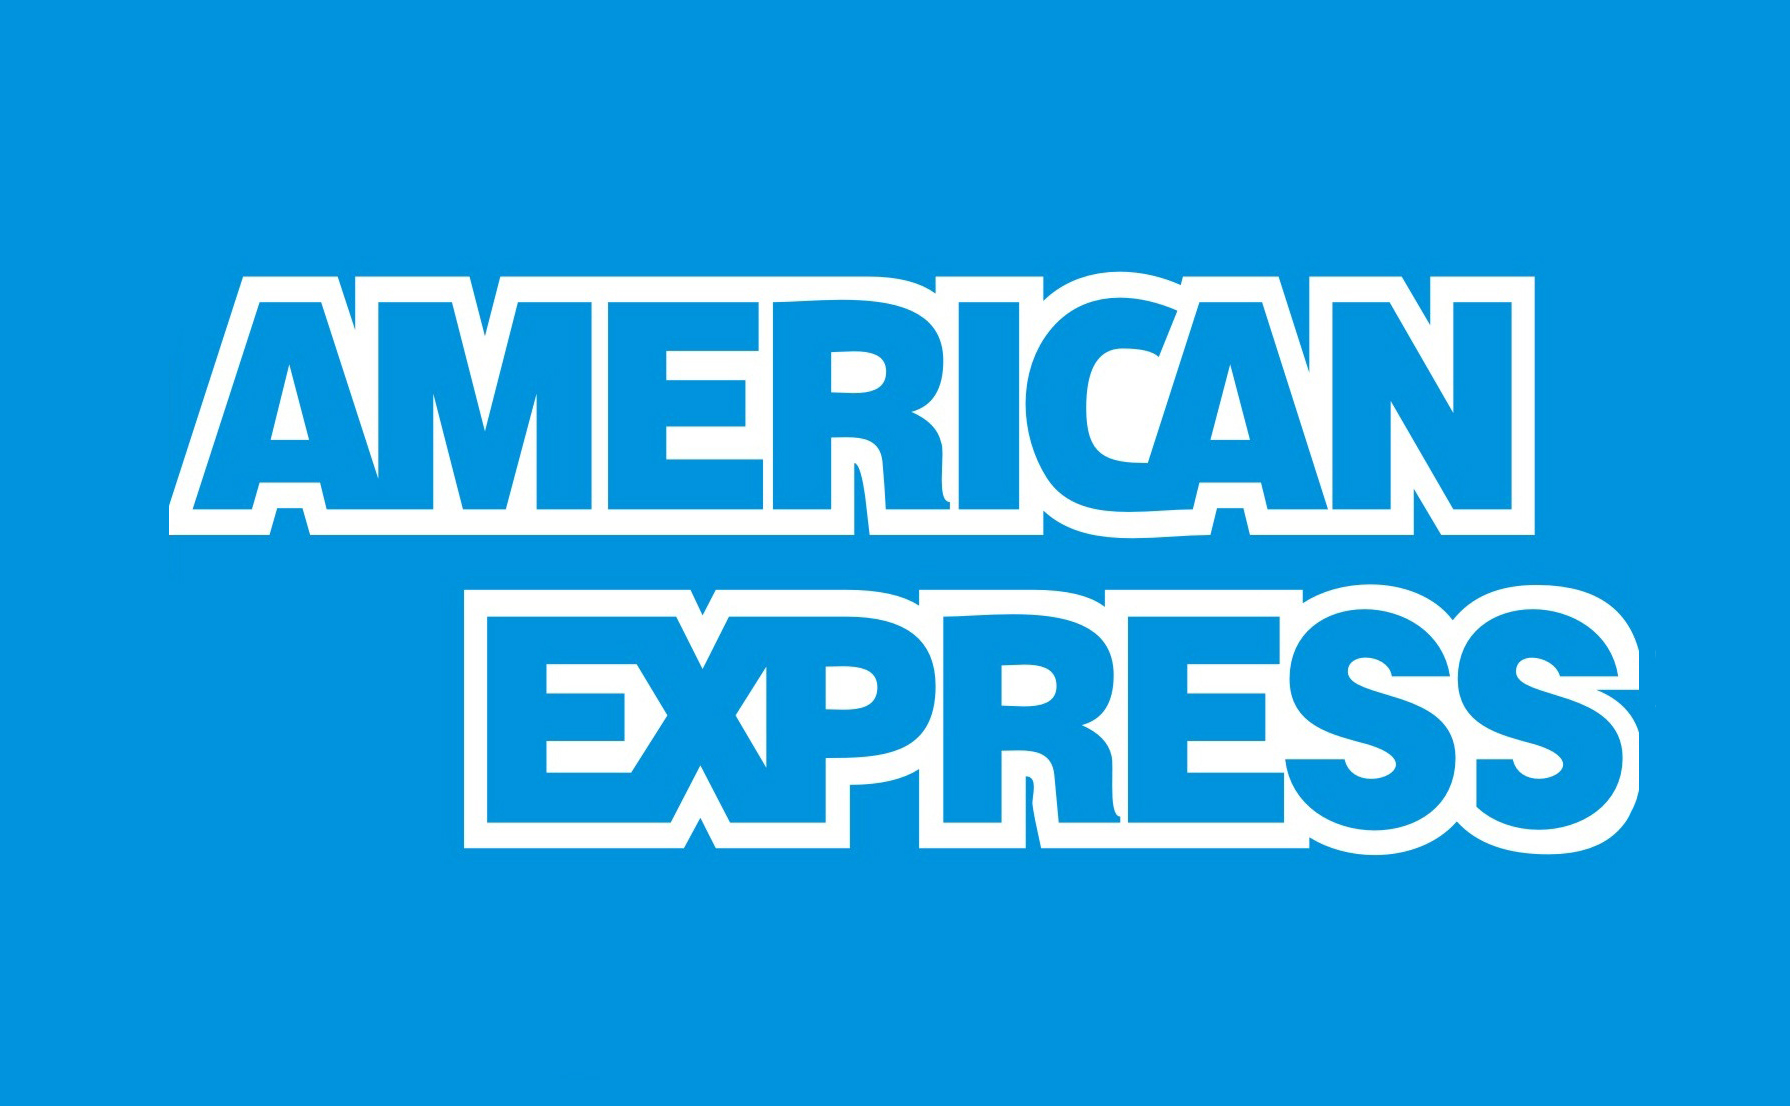 American-Express-Logo-Vector-Free-Download.jpg